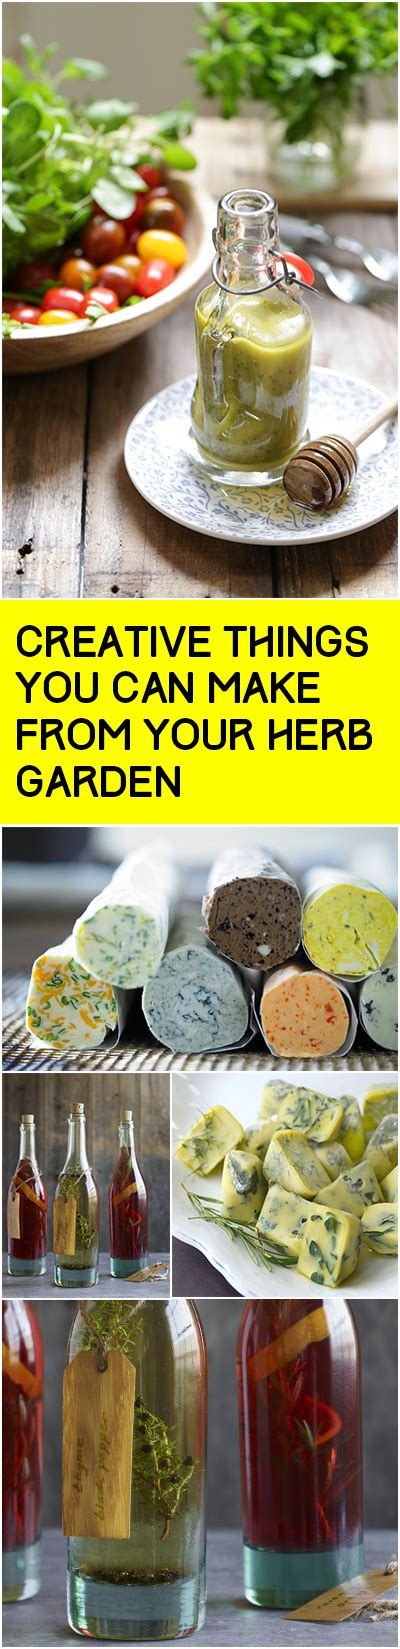 creative things you can make from your herb garden bless my weeds